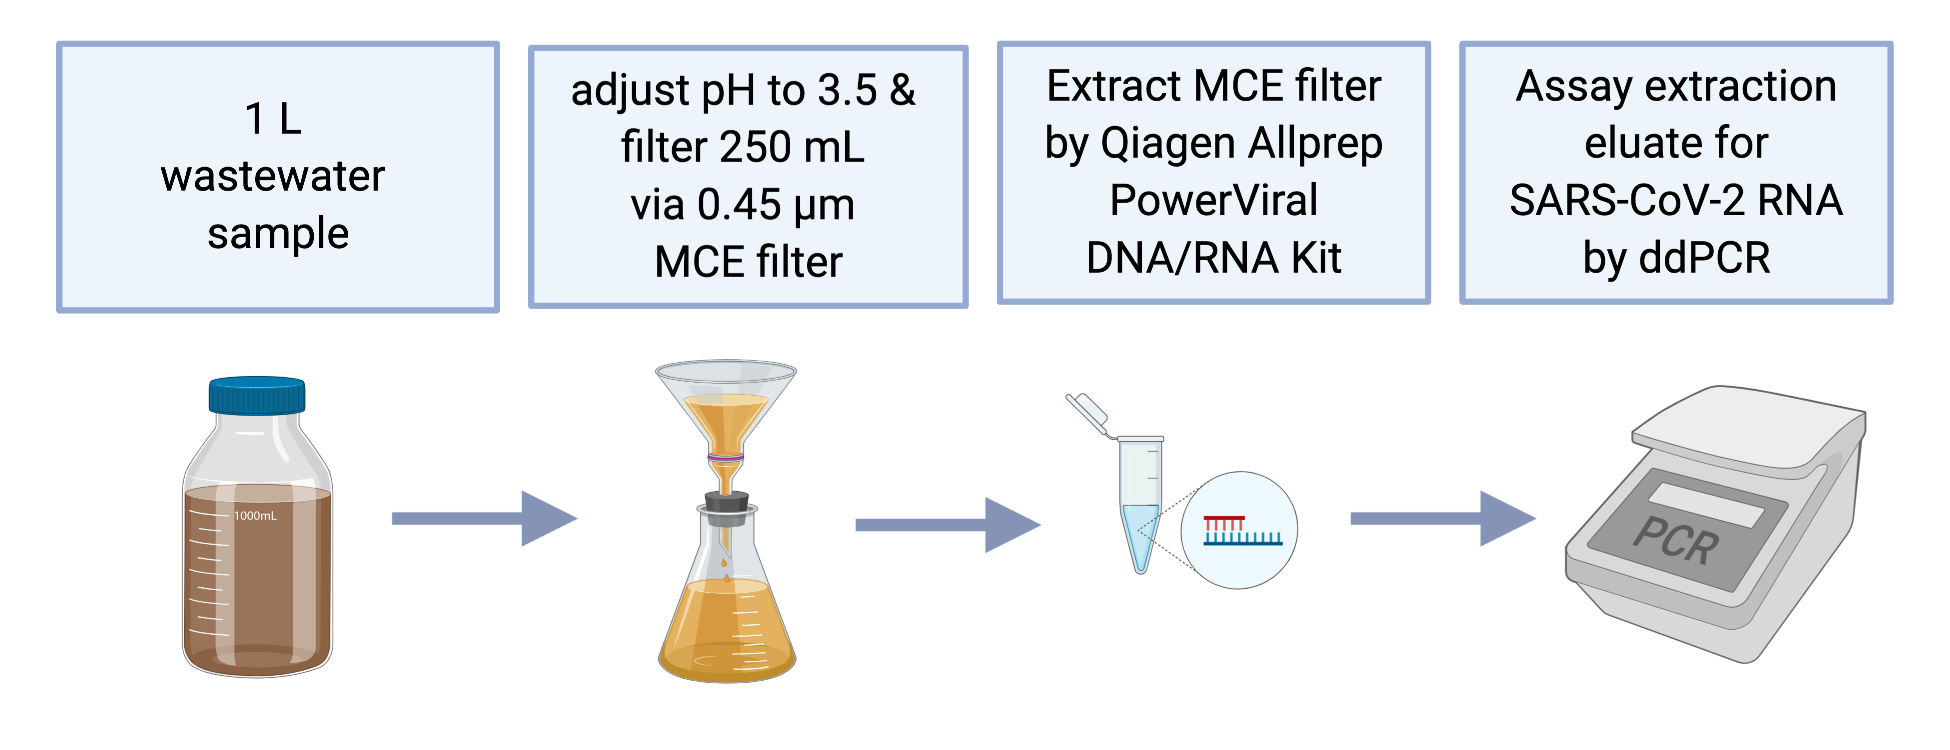 Wastewater Concentration By Adsorption And Direct Extraction For Sars Cov 2 Rna Detection And Quantification Using Rt Ddpcr